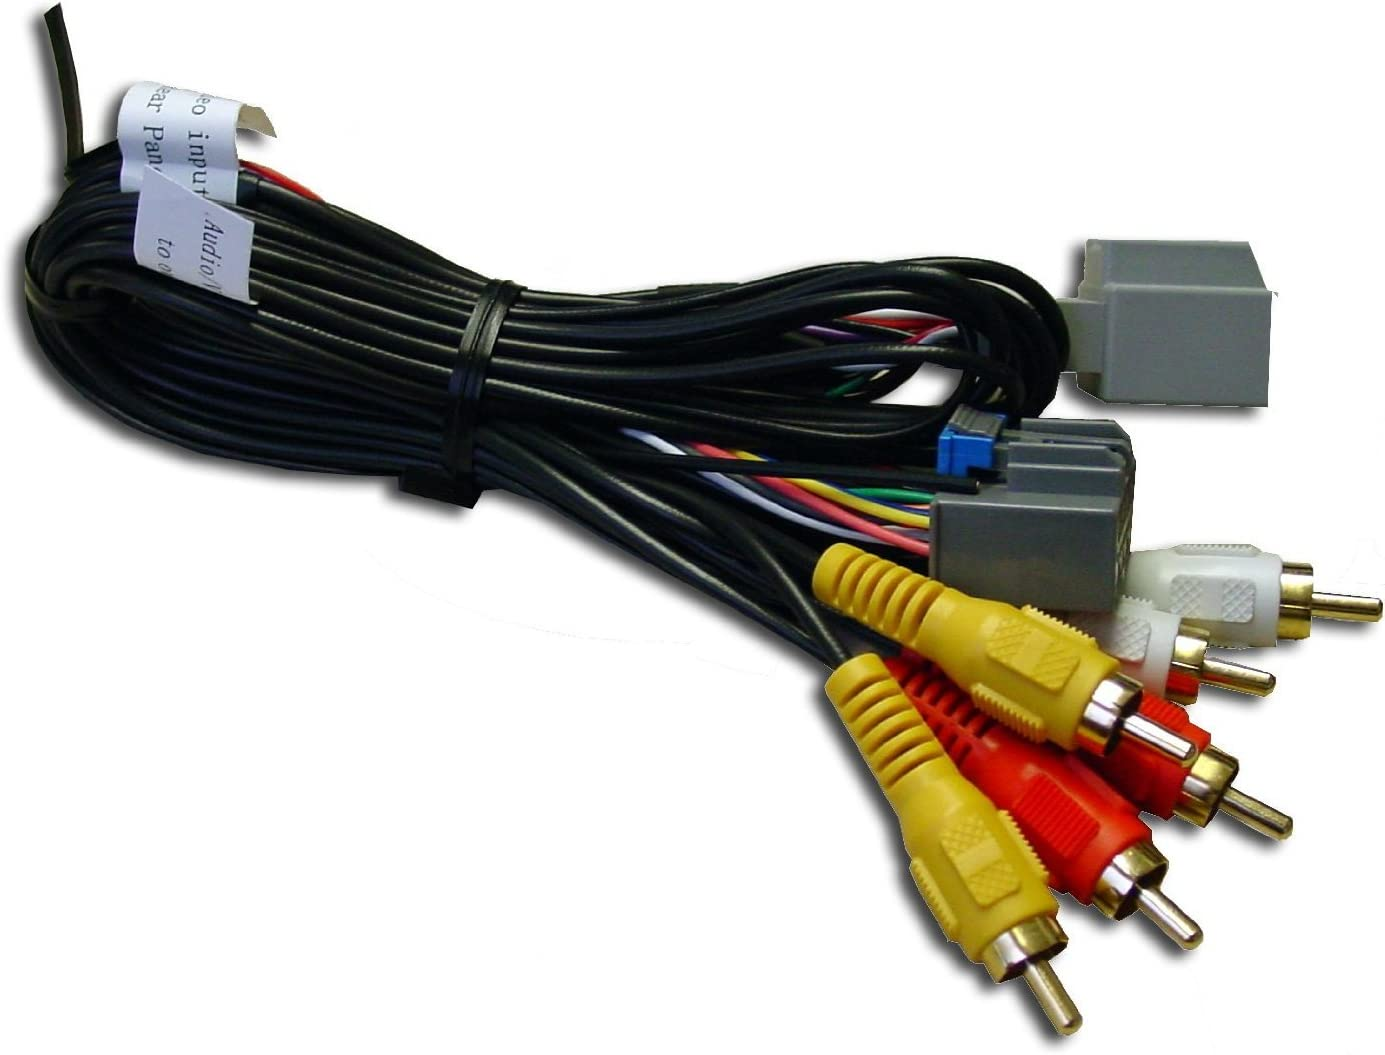 PAC GMRVD Overhead LCD Retention Cable for General Motors Vehicles With Rear Seat Entertainment Scosche